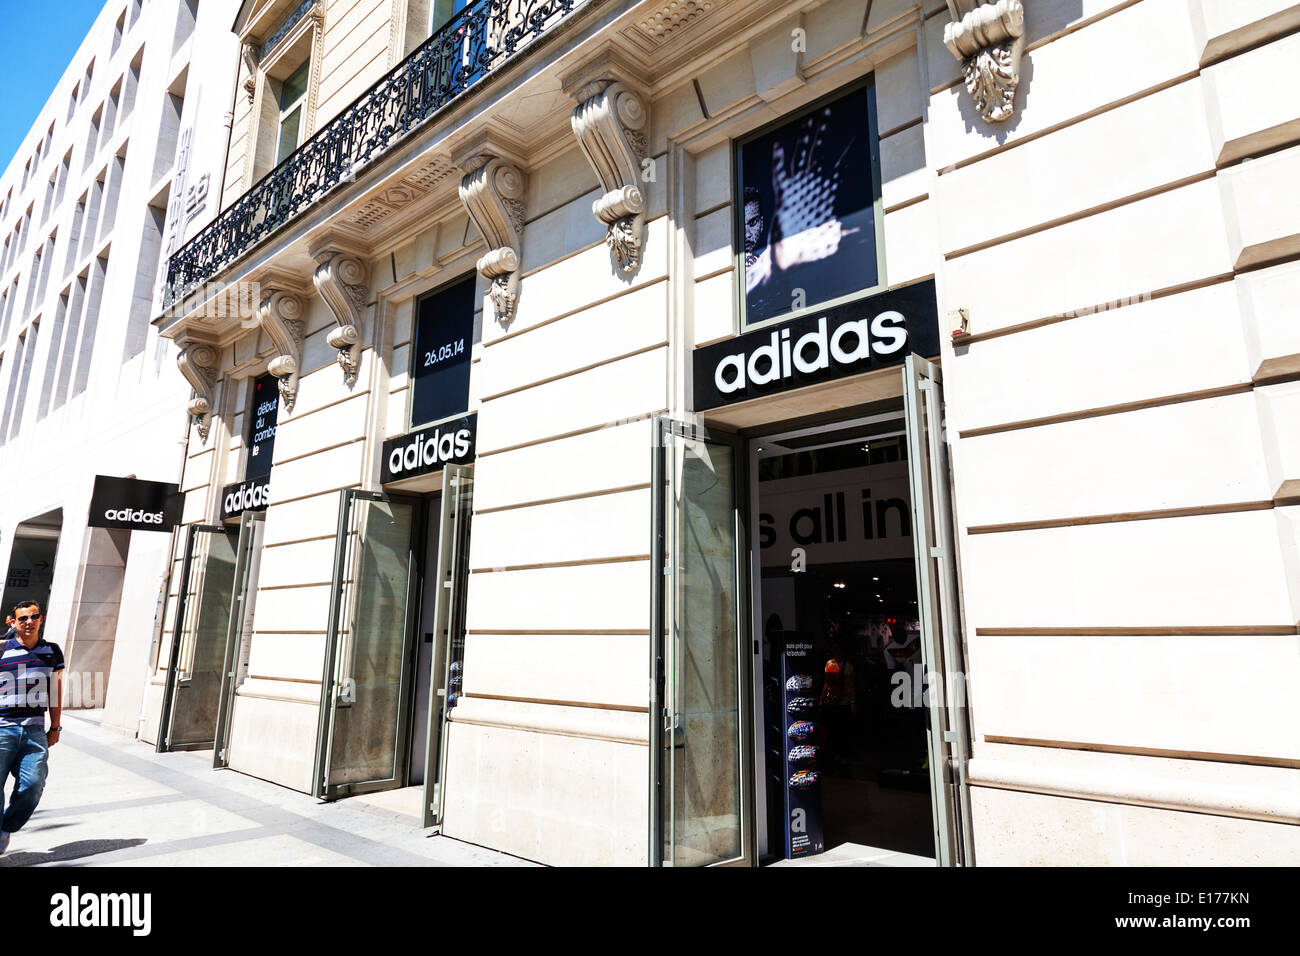 Adidas shop front Avenue Des Champs Elysees Elysées Paris city europe european destination - Stock Image